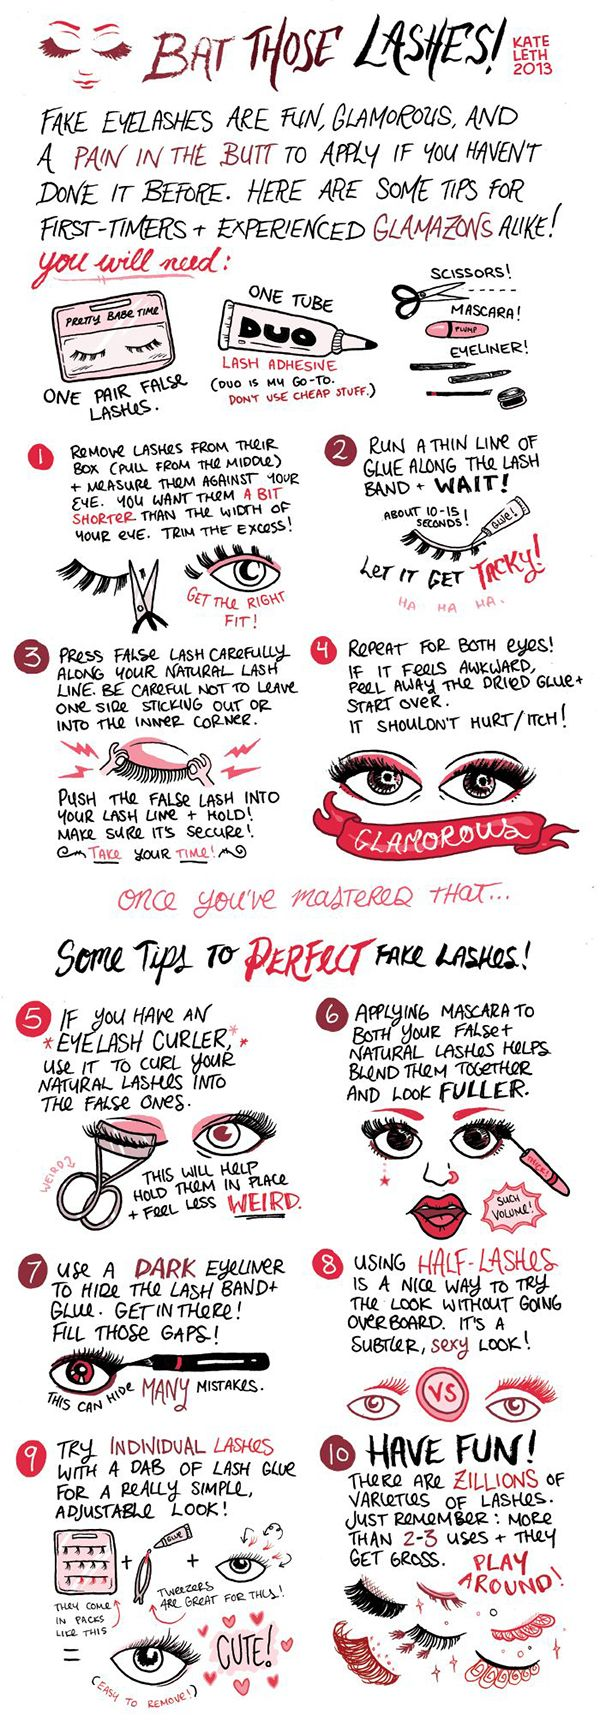 18 Hacks, Tips and Tricks On How To Apply False Eyelashes Perfectly - Gurl.com